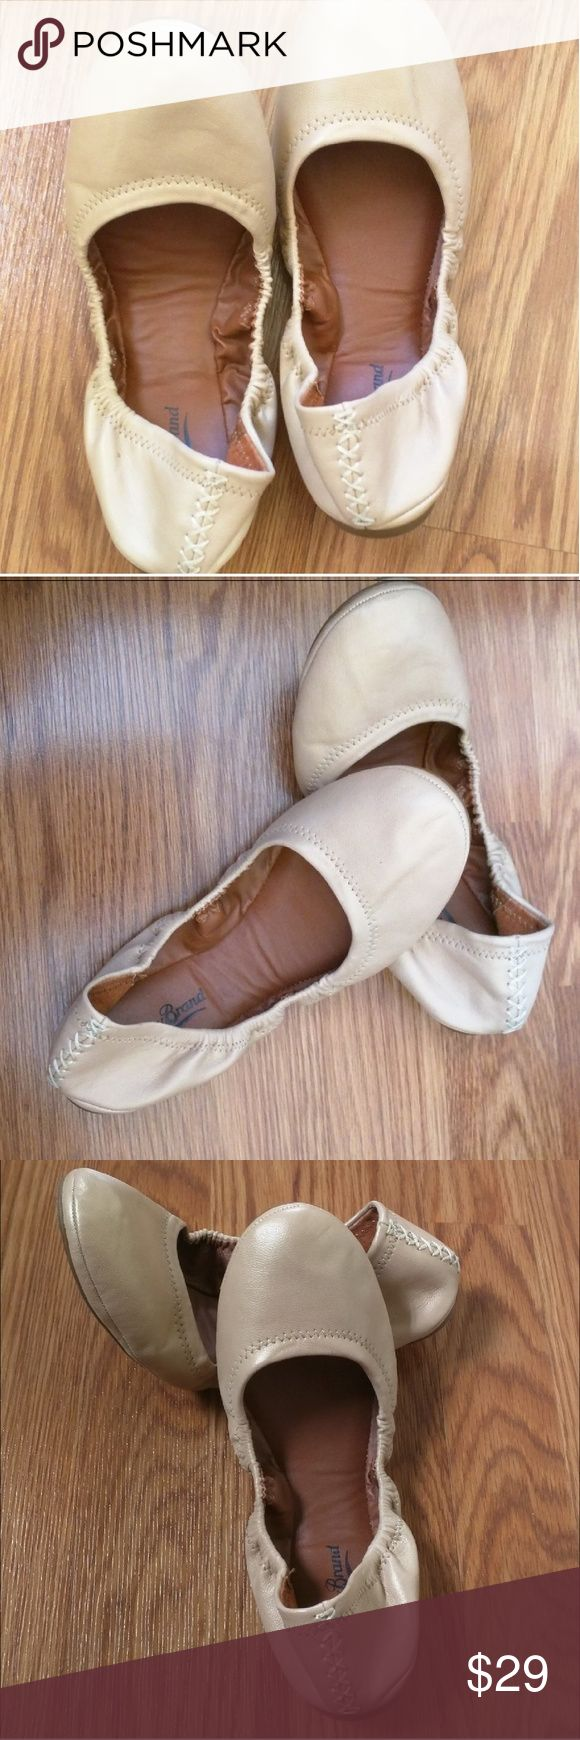 Lucky Brand Emmie nude ballet flats Lucky Brand lightweight ballet flats. Super lightweight soft sole, no frills flats. Great neutral color.  Worn once. Sticker tag on bottom says 9 1/2. Lucky Brand Shoes Flats & Loafers